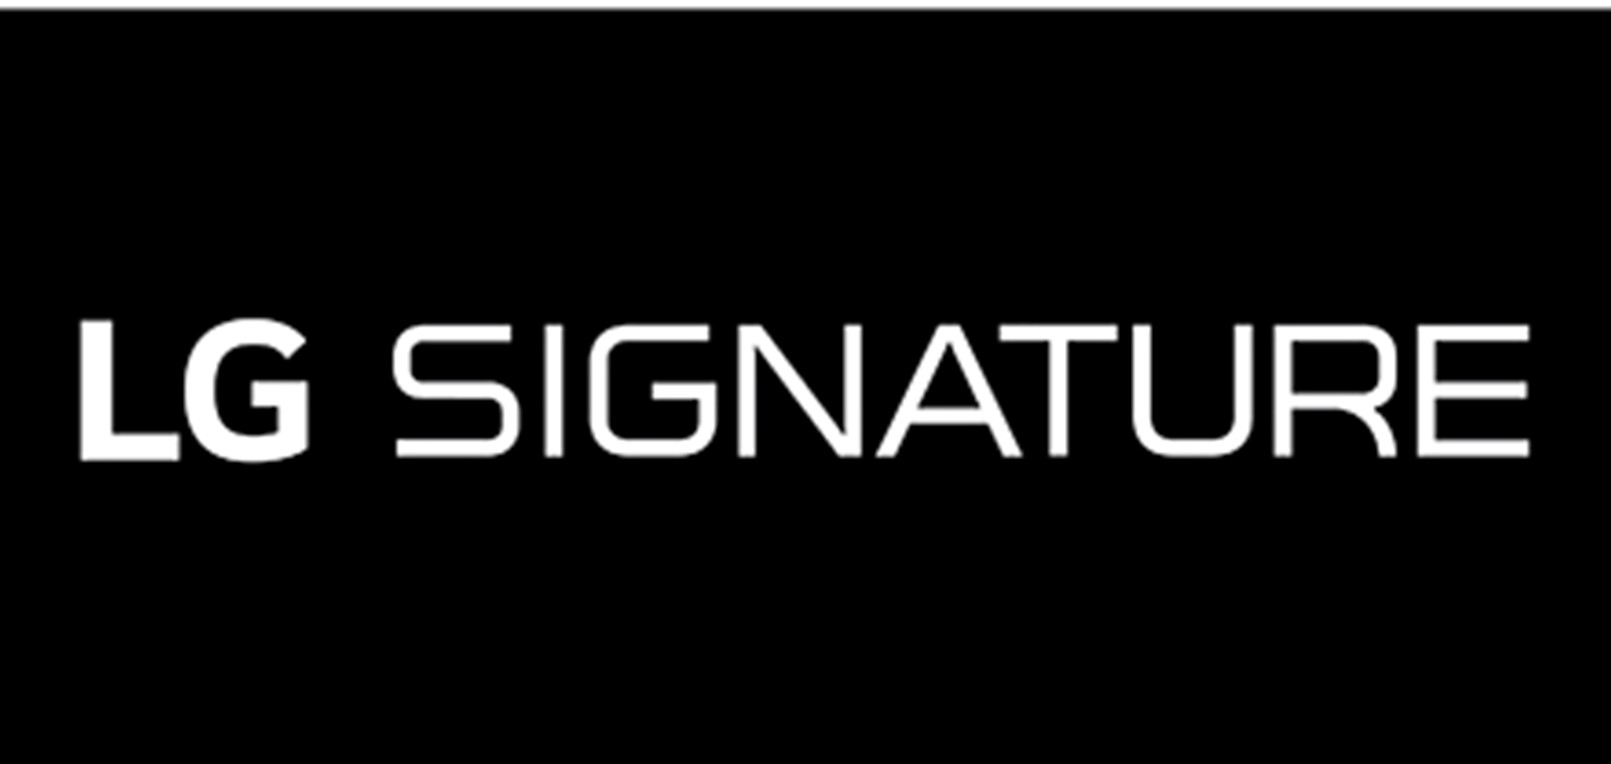 The official logo of LG SIGNATURE, the company's premium lineup, with white text on a black background.